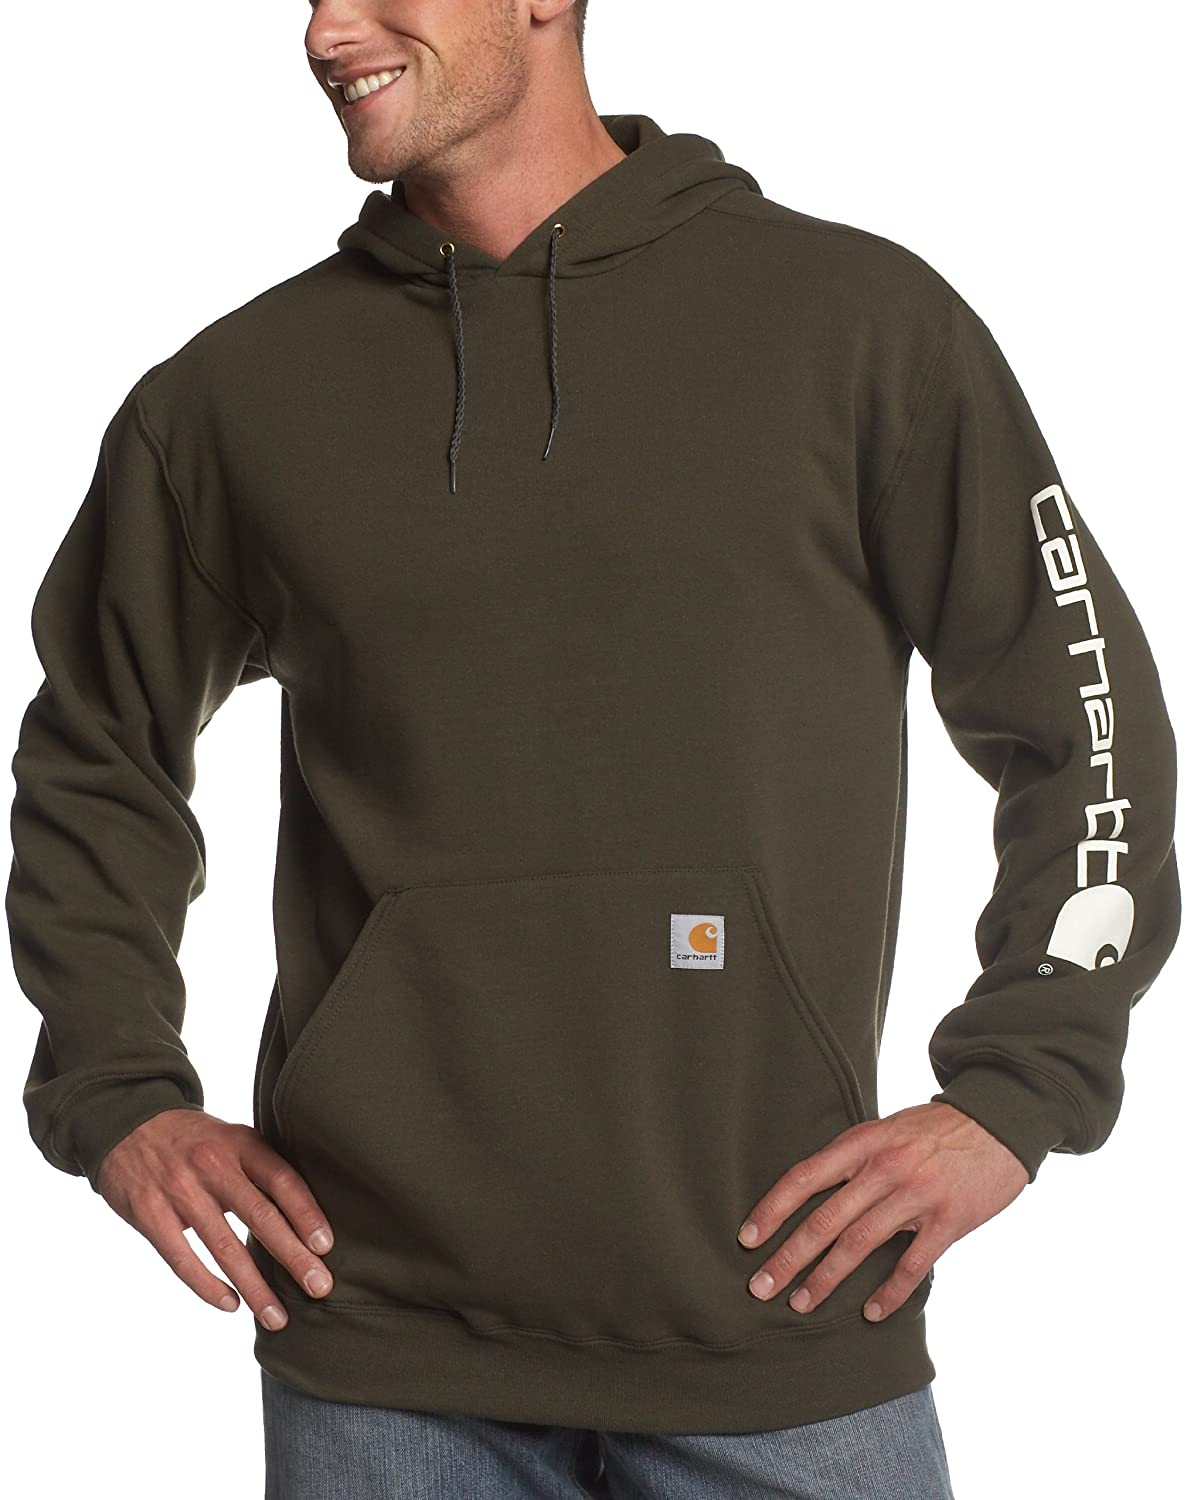 5a3a98a24 Carhartt Men's Midweight Sleeve Logo Hooded Sweatshirt at Amazon Men's  Clothing store: Fashion Hoodies